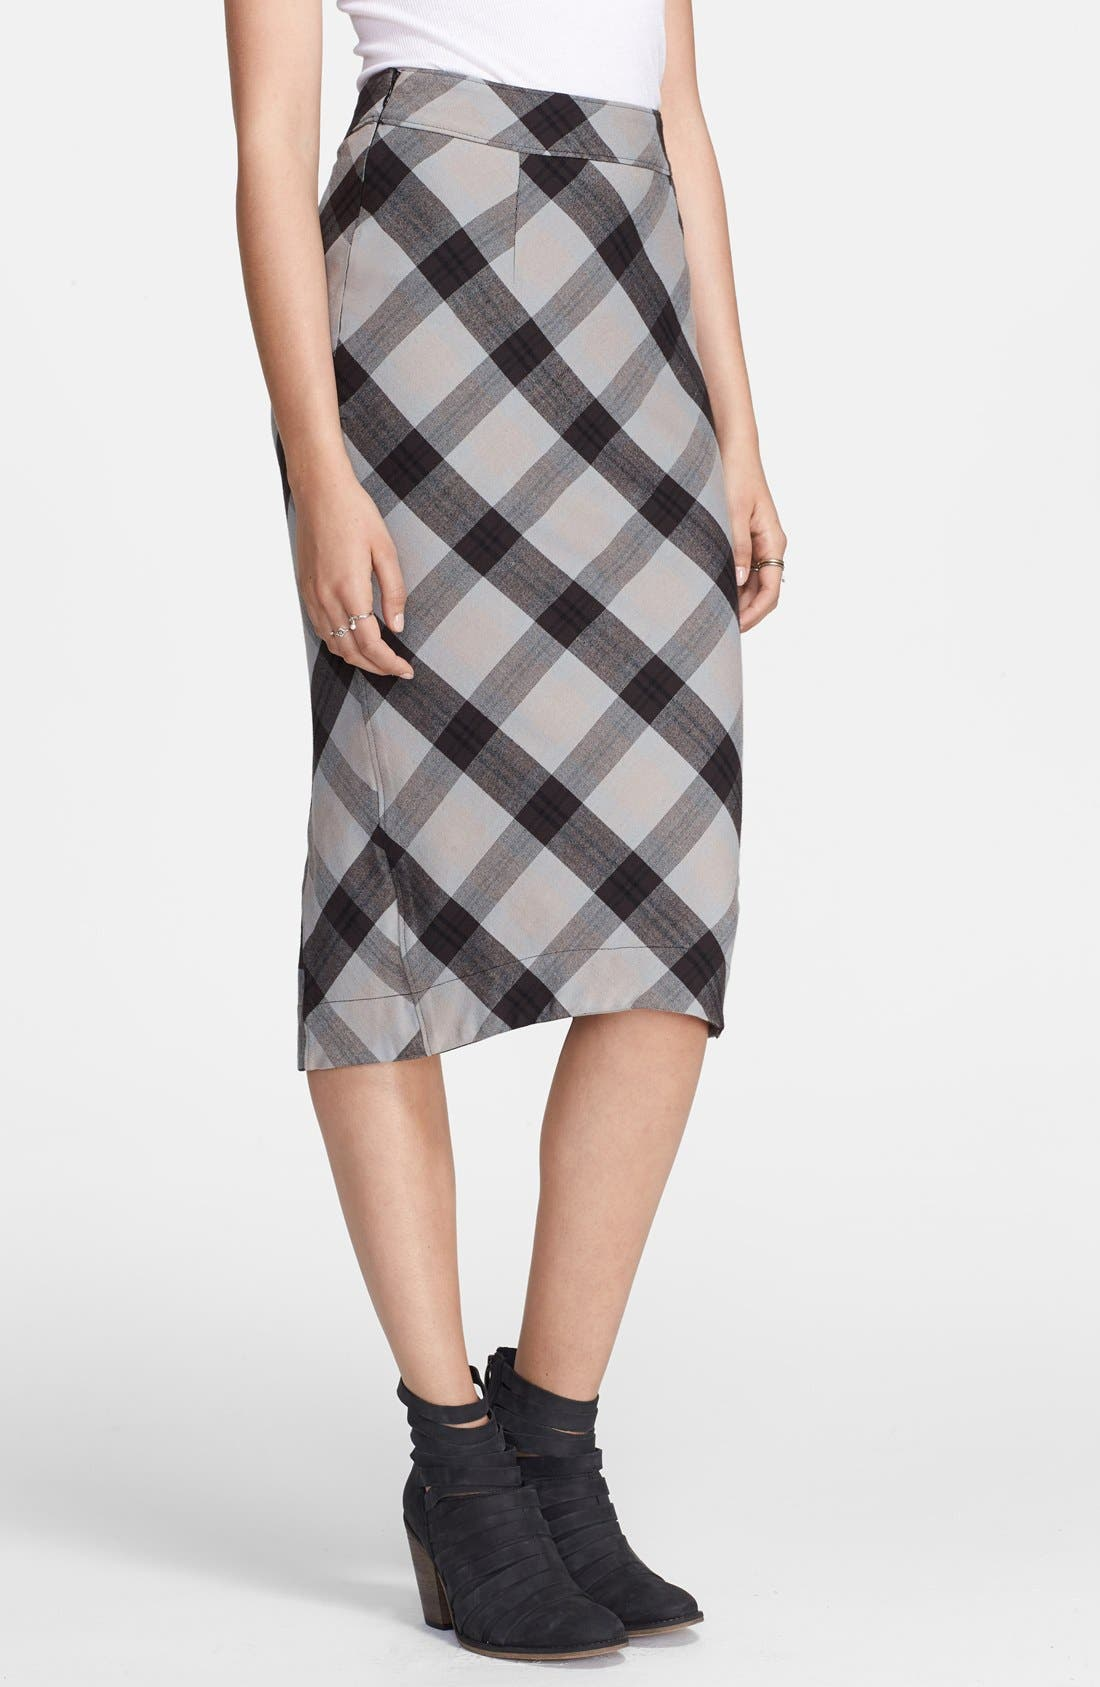 Alternate Image 1 Selected - Free People 'Geometric Precision' Plaid Pencil Skirt